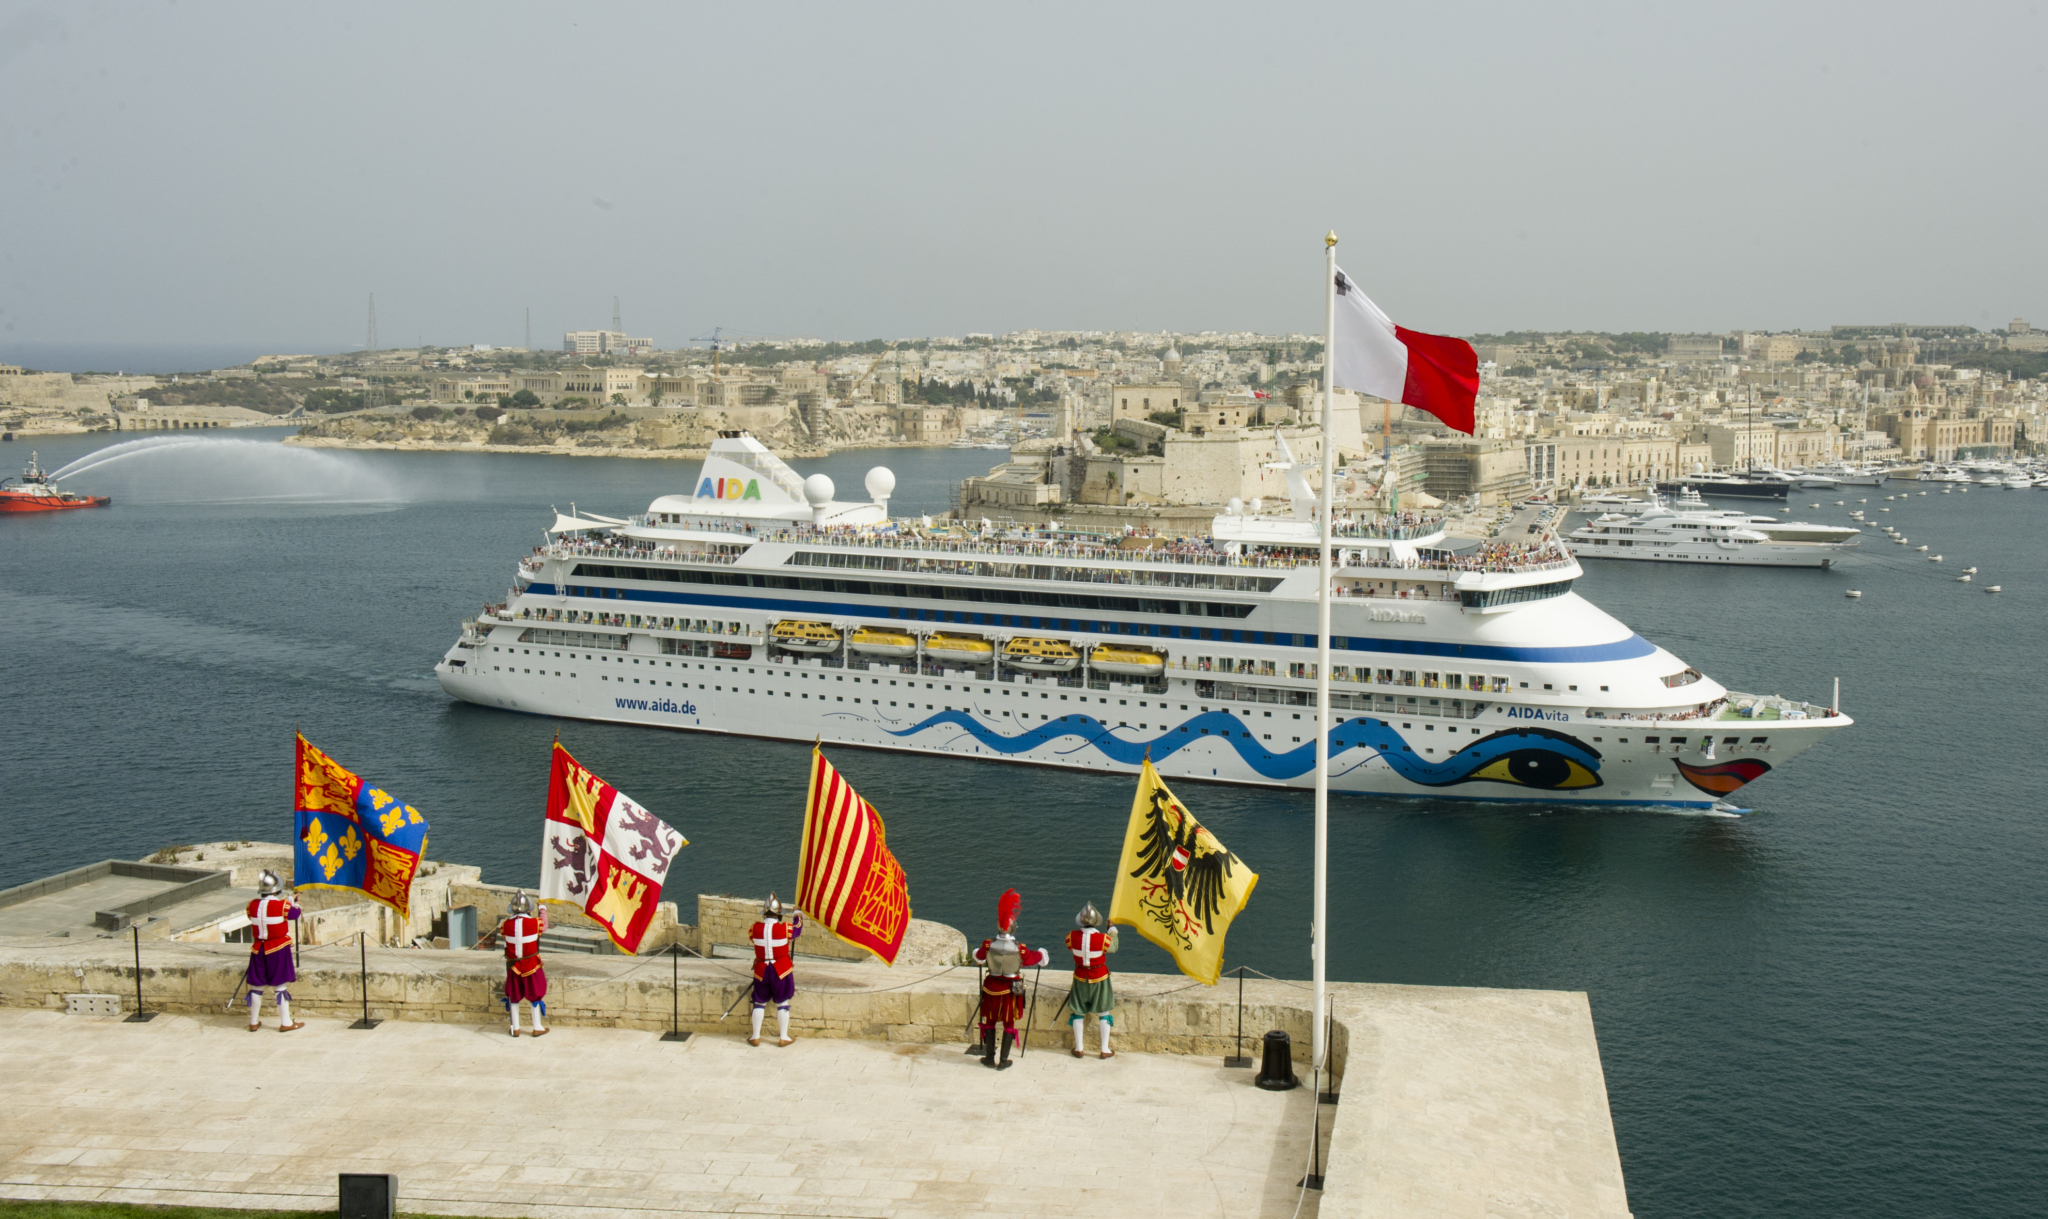 Malta's largest event by On Site Malta